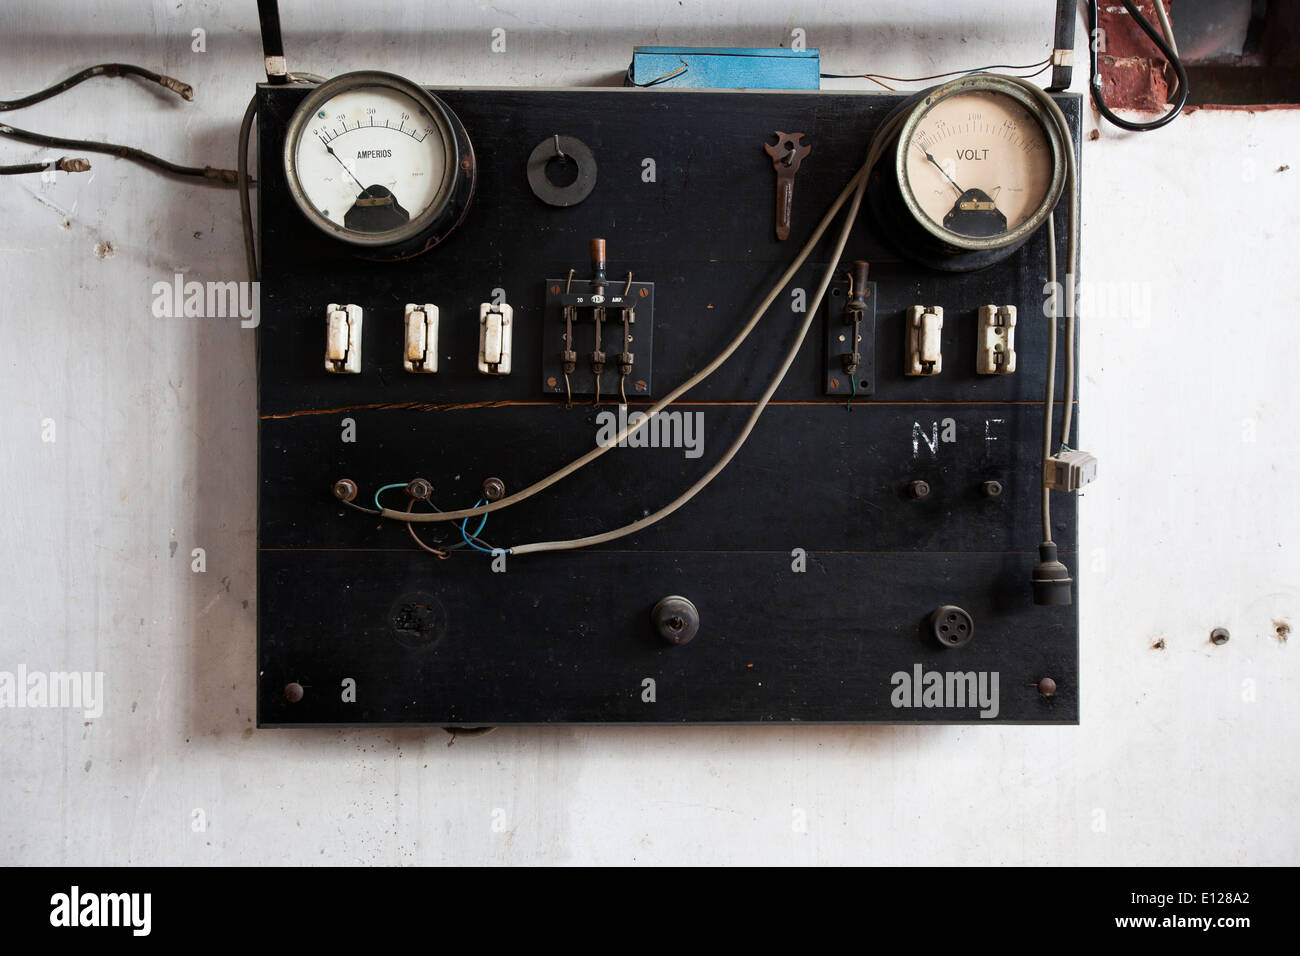 Old Electrical Panel Stockfotos & Old Electrical Panel Bilder - Alamy